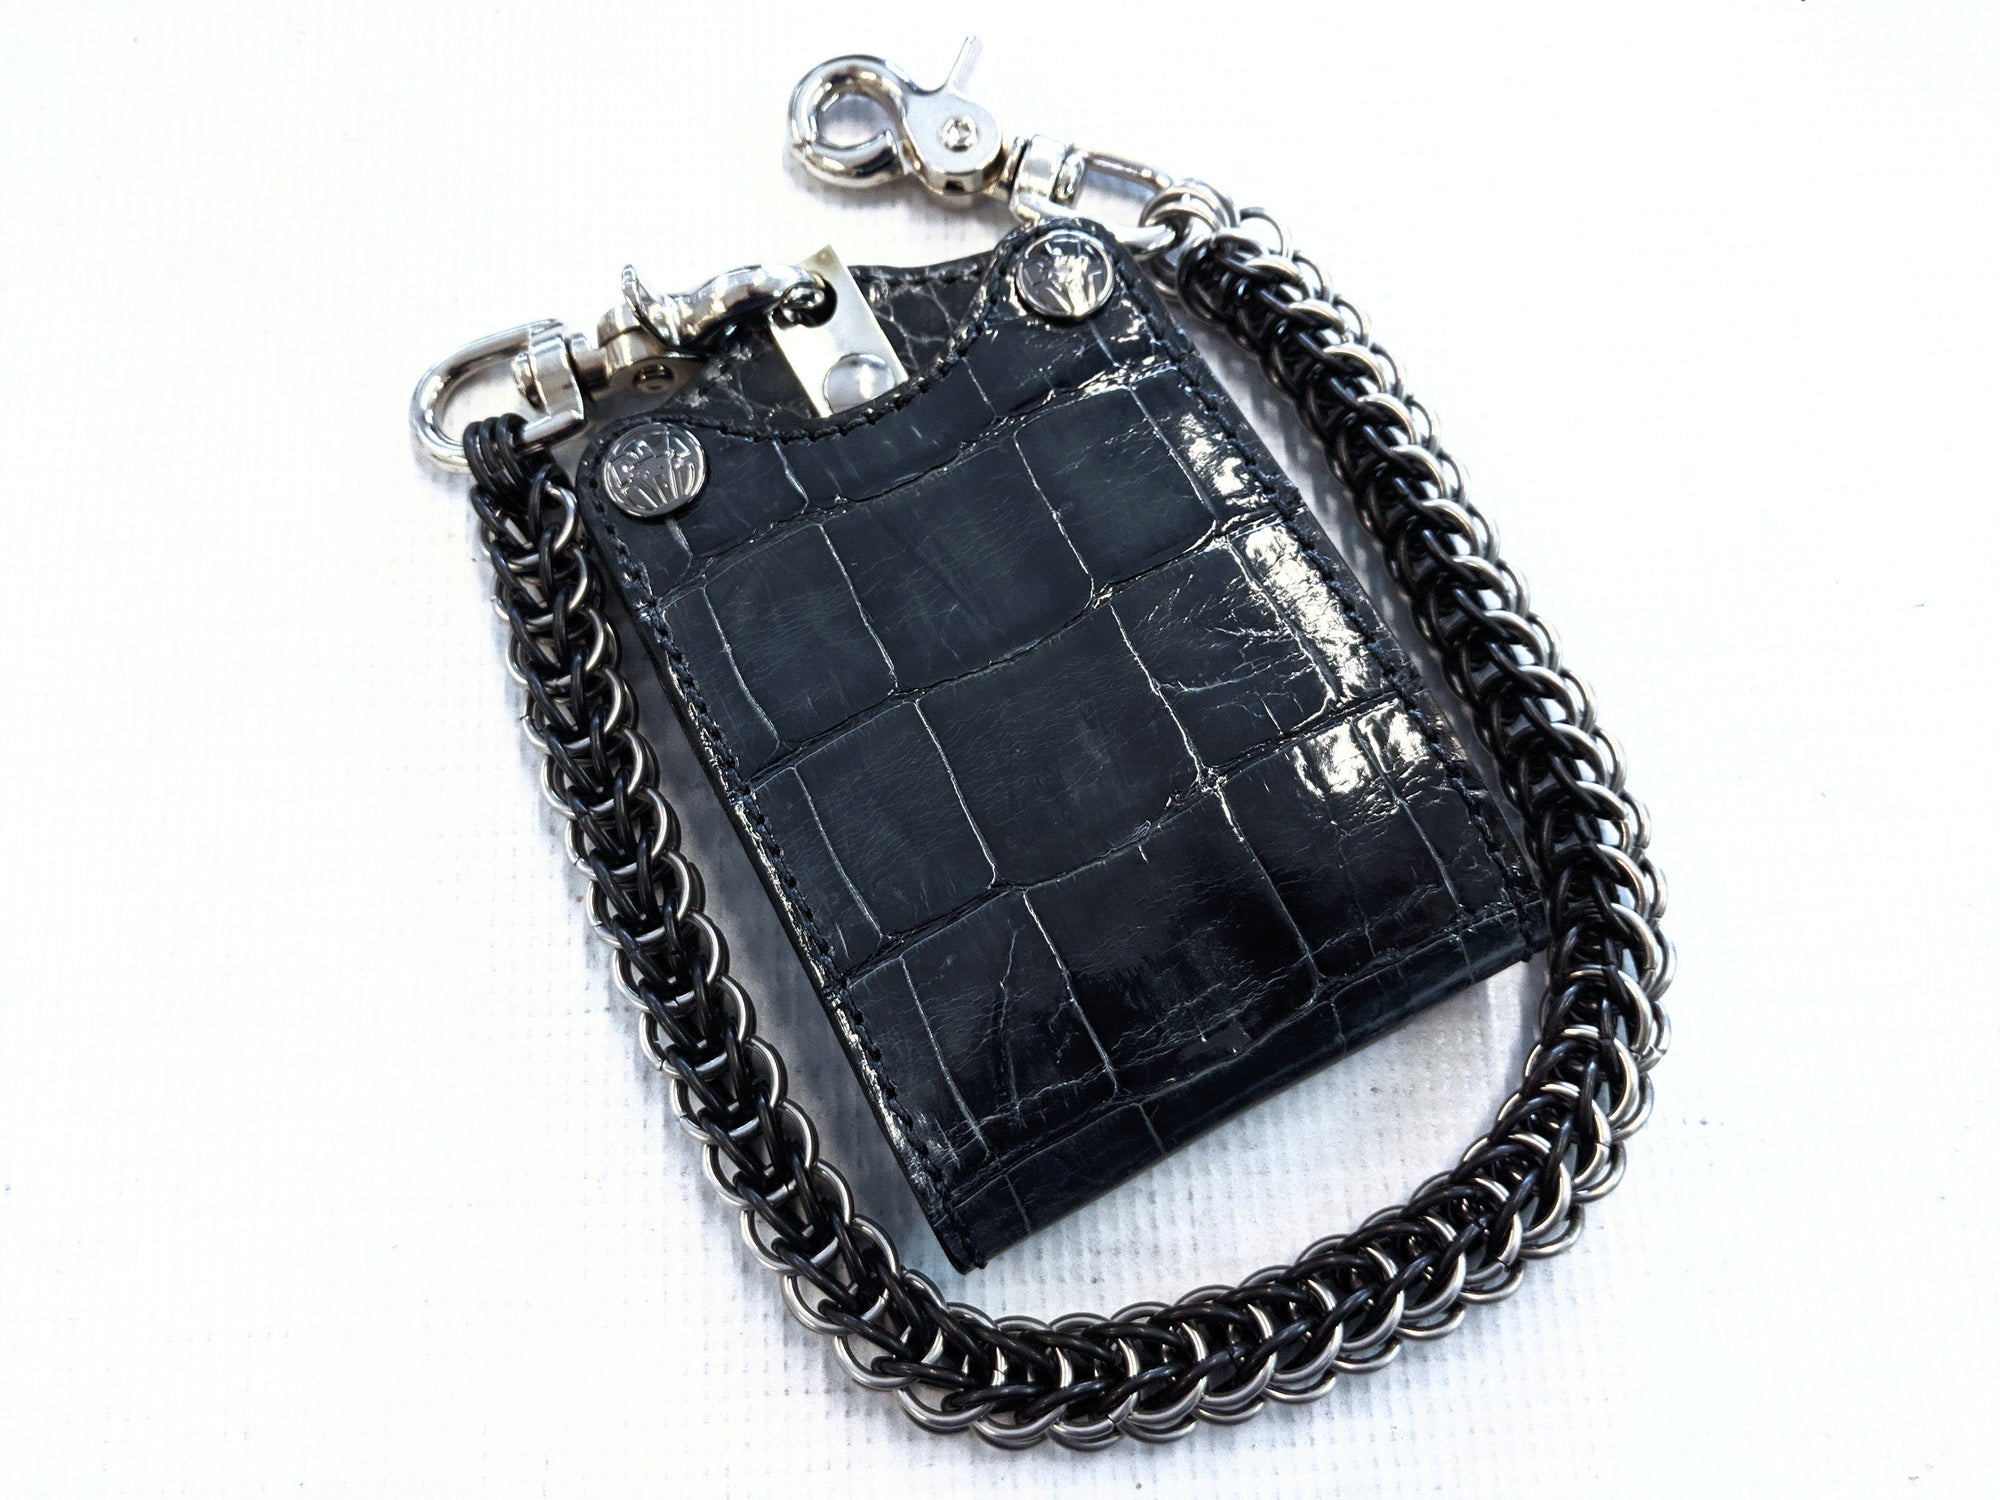 Bifold Leather Chain Wallet - Slate Gray Alligator 2 - Anvil Customs